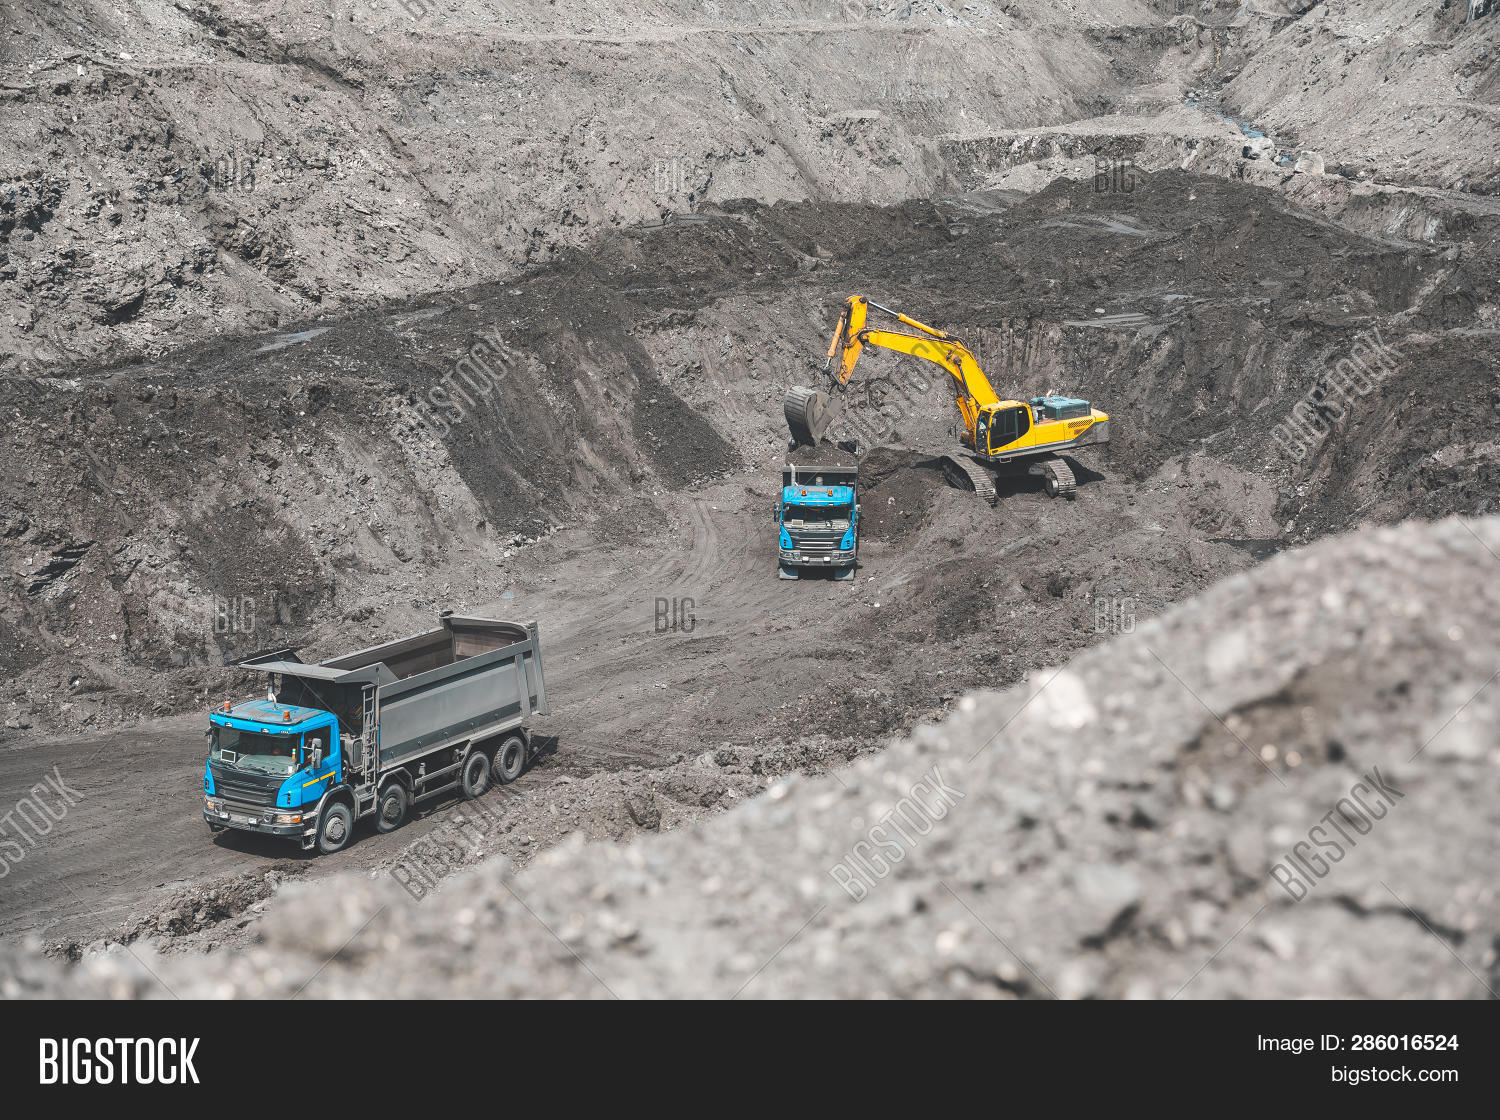 auto,automobile,belaz,big,car,career,cargo,coal,coalmining,digger,dump,dumper,dumptruck,earthmover,equipment,excavate,excavation,giant,ground,heavy,huge,industrial,industry,large,loader,lorry,machine,machinery,mine,miner,minerals,mining,mover,open,open-pit,opencast,pit,power,powerful,quarry,rock,tipper,tractor,transport,transportation,truck,yellow